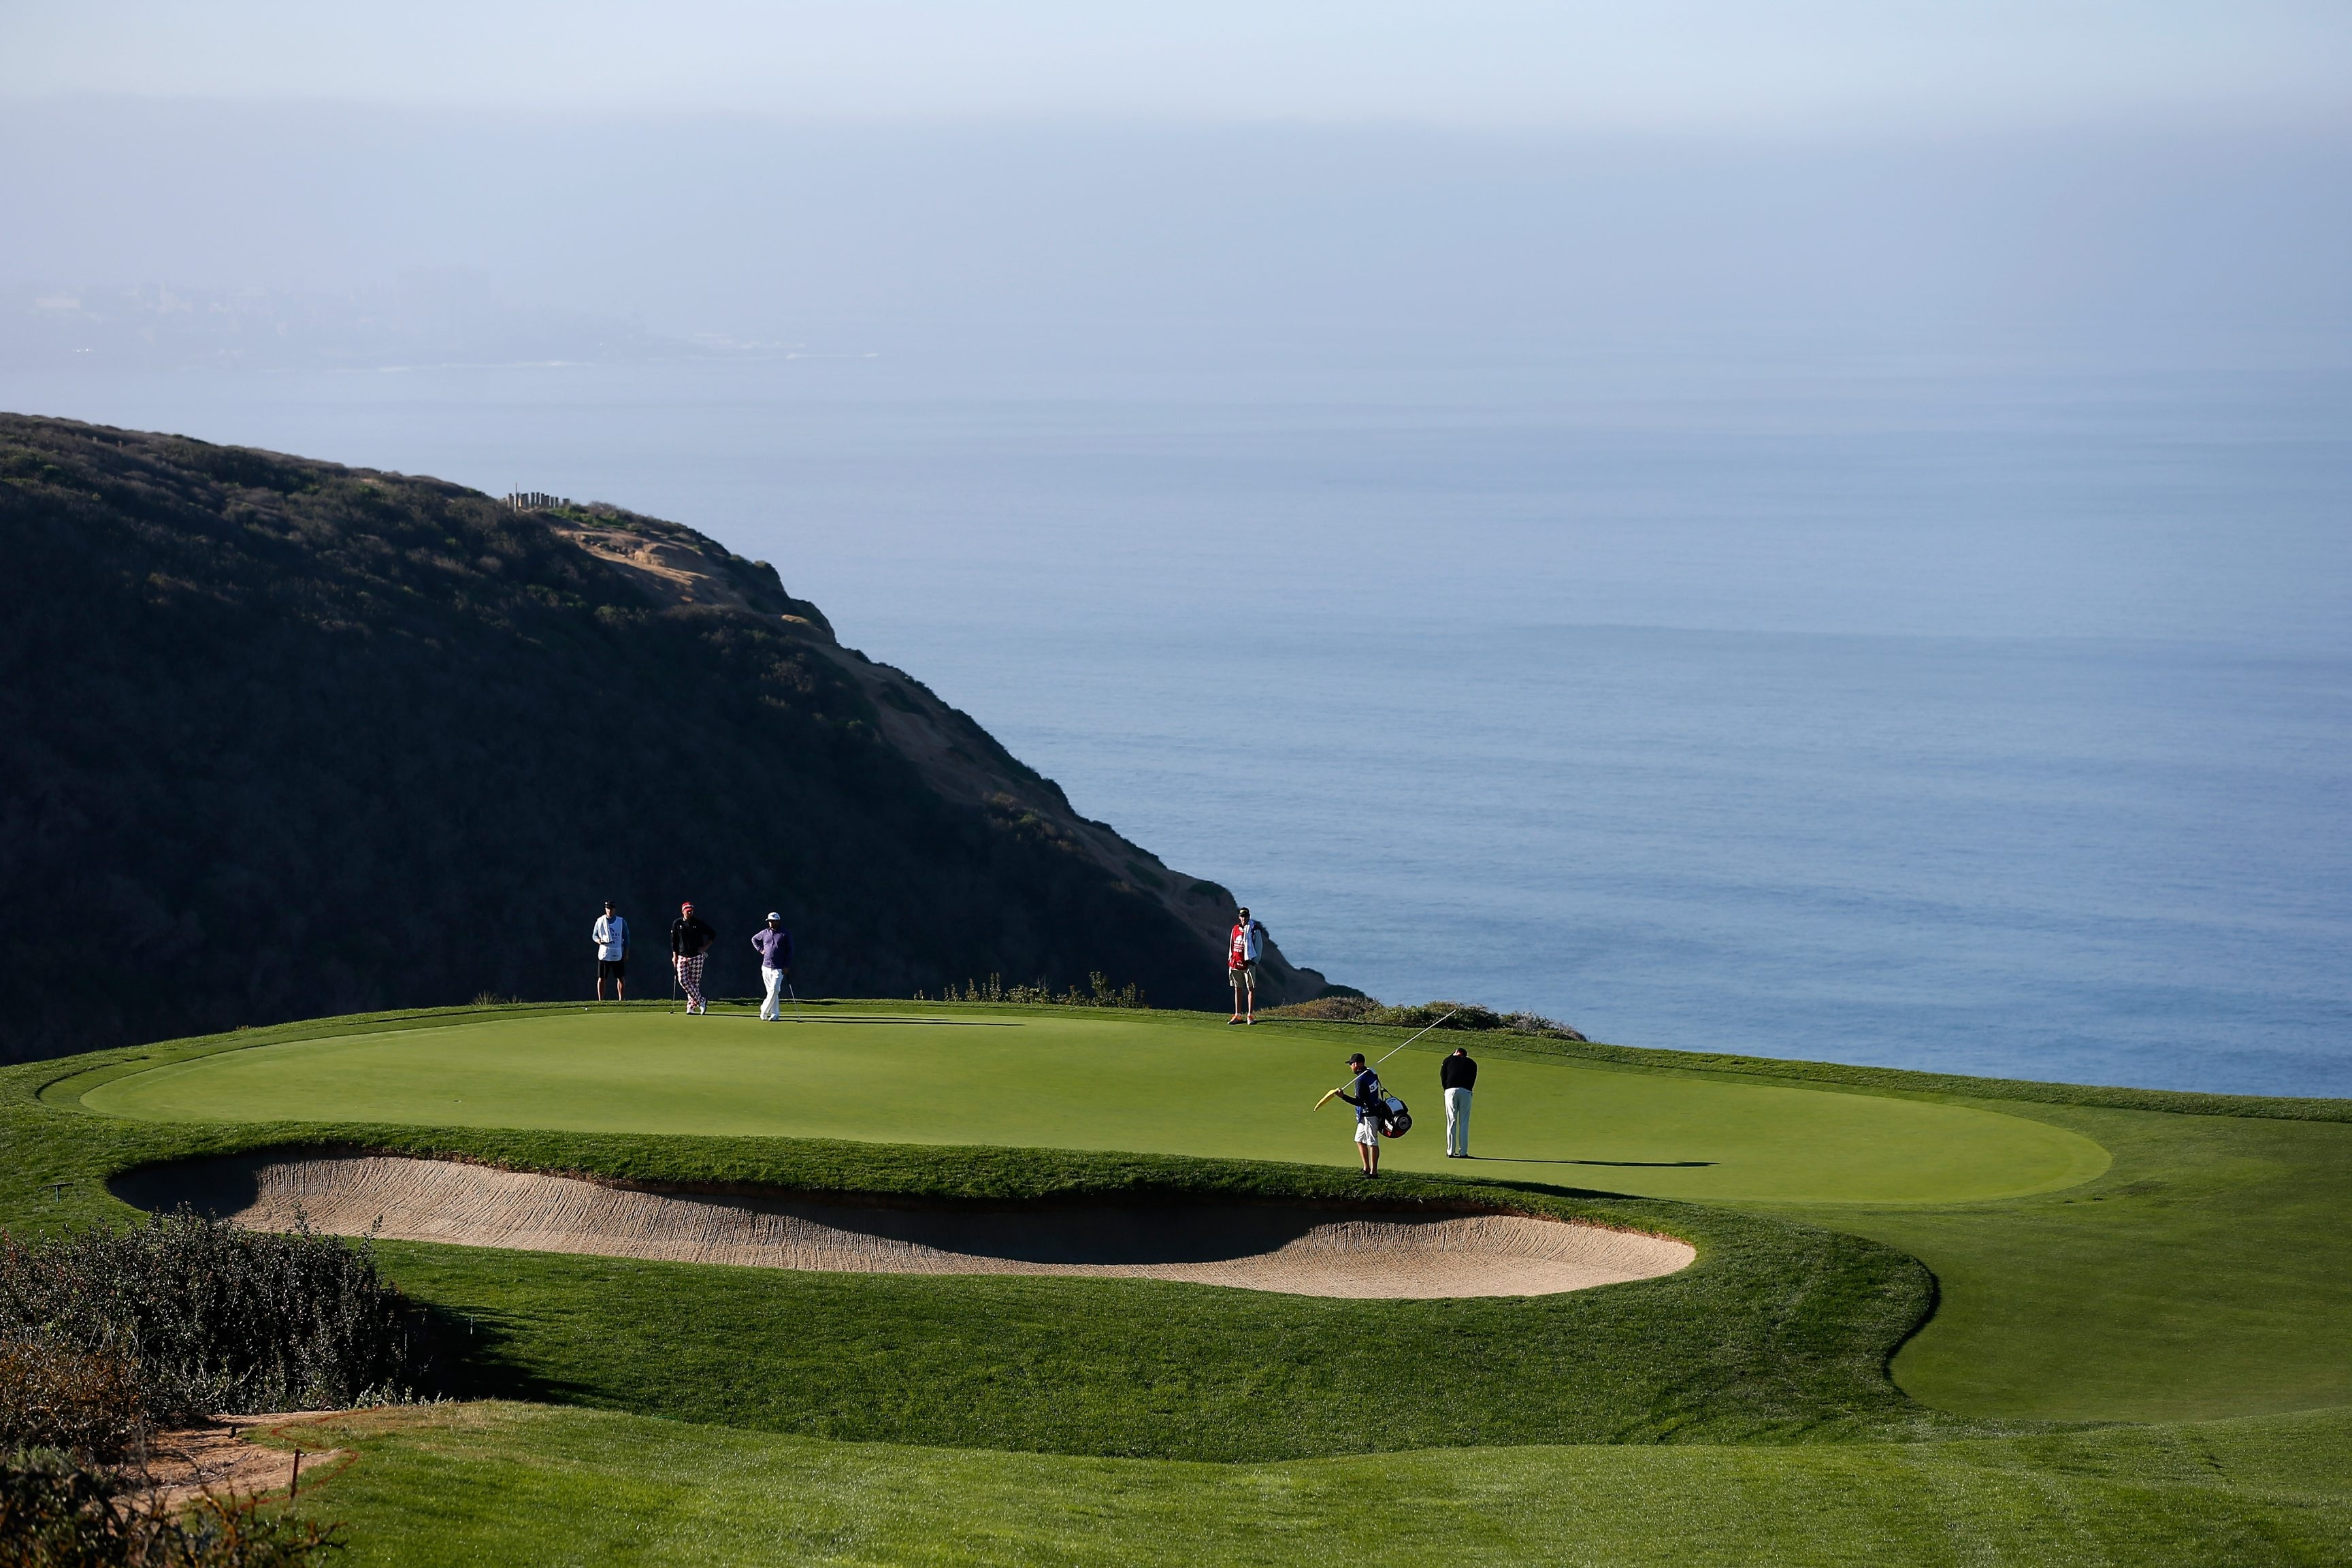 PGA Tour pros putt on the scenic third hole at Torrey Pines' South Course, a worthwhile addition to any golfer's bucket list.